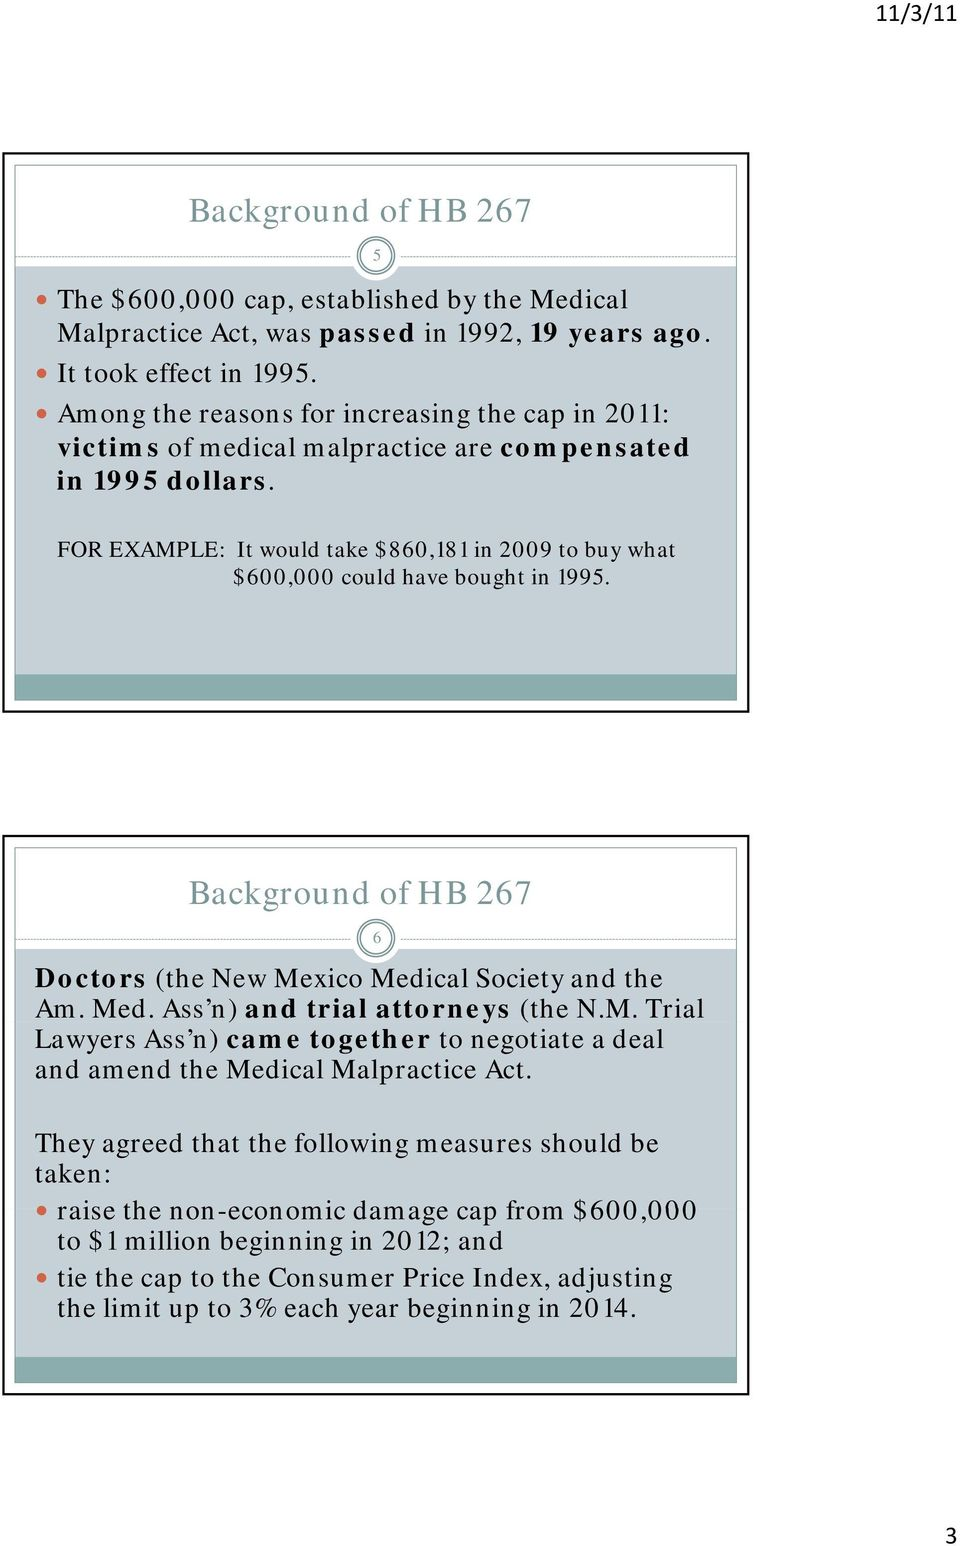 5 FOR EXAMPLE: It would take $860,181 in 2009 to buy what $600,000 could have bought in 1995. Background of HB 267 Doctors (the New Mexico Medical Society and the Am. Med. Ass n) and trial attorneys (the N.